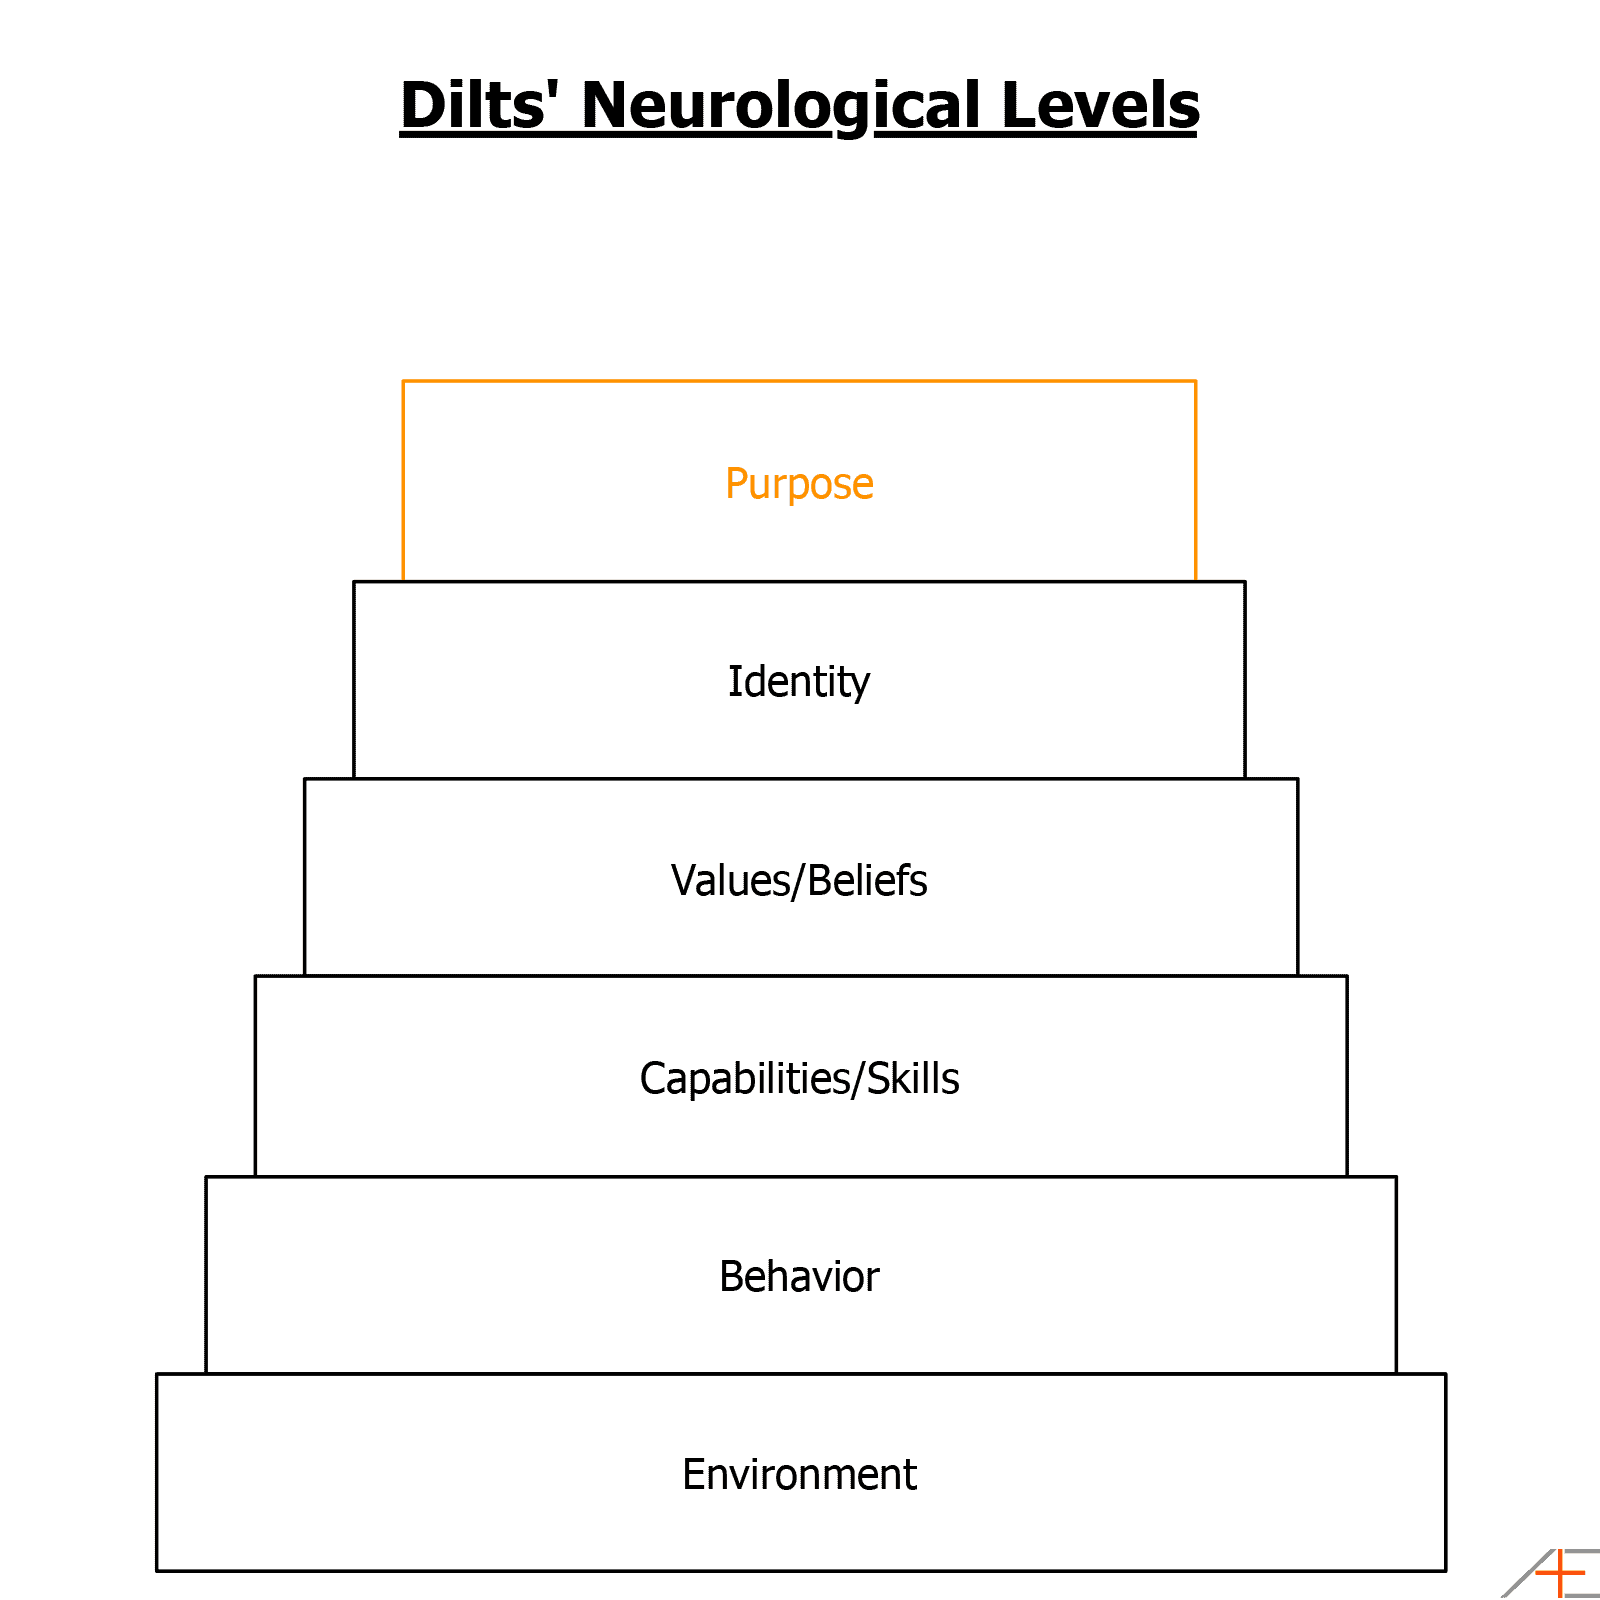 dilts-neurological-levels